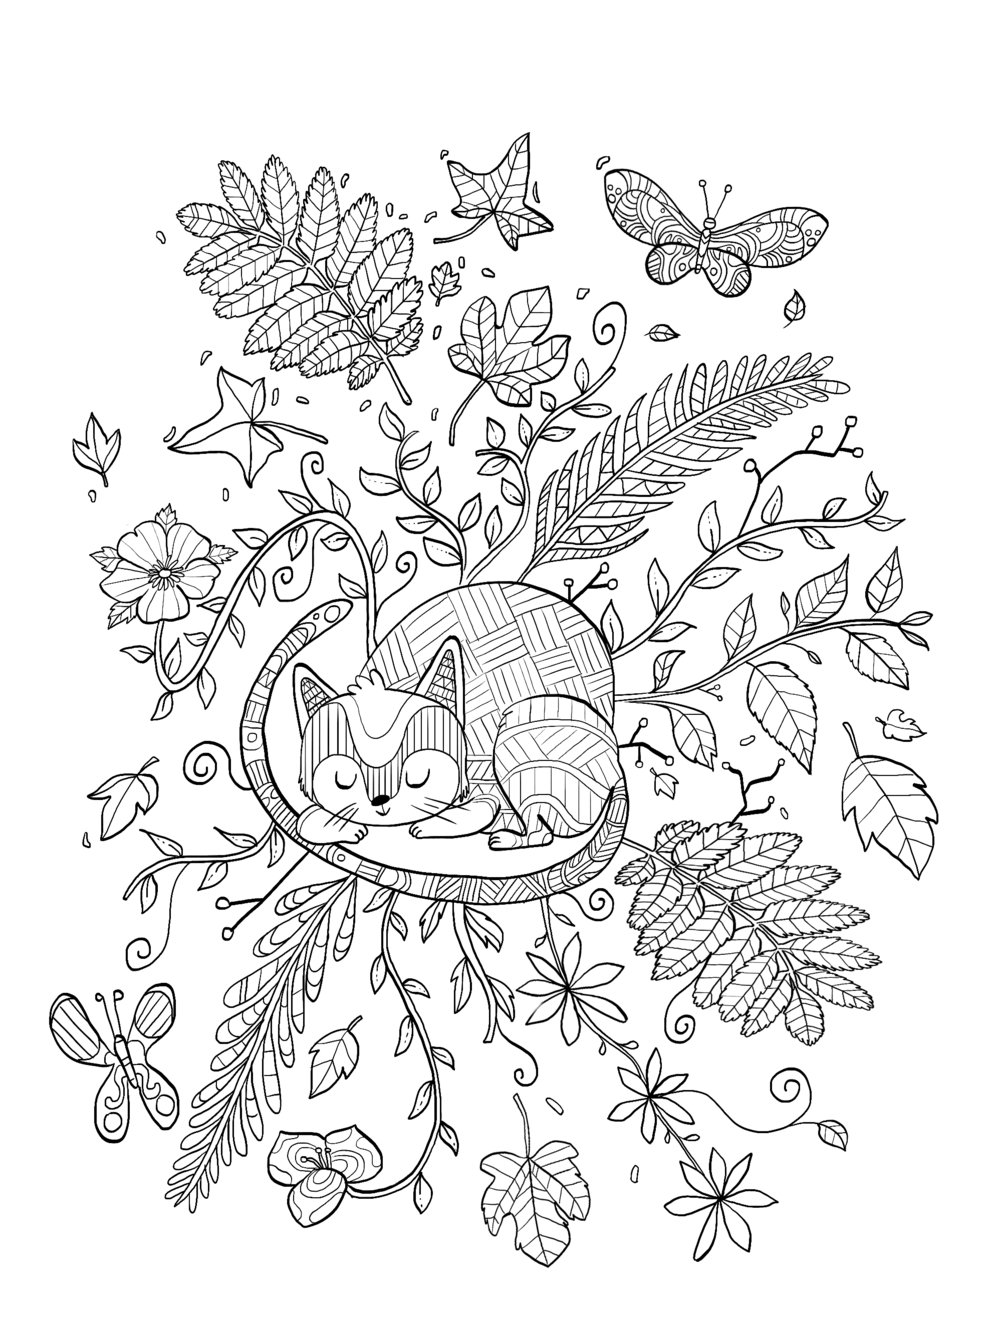 leaves and cat.jpg